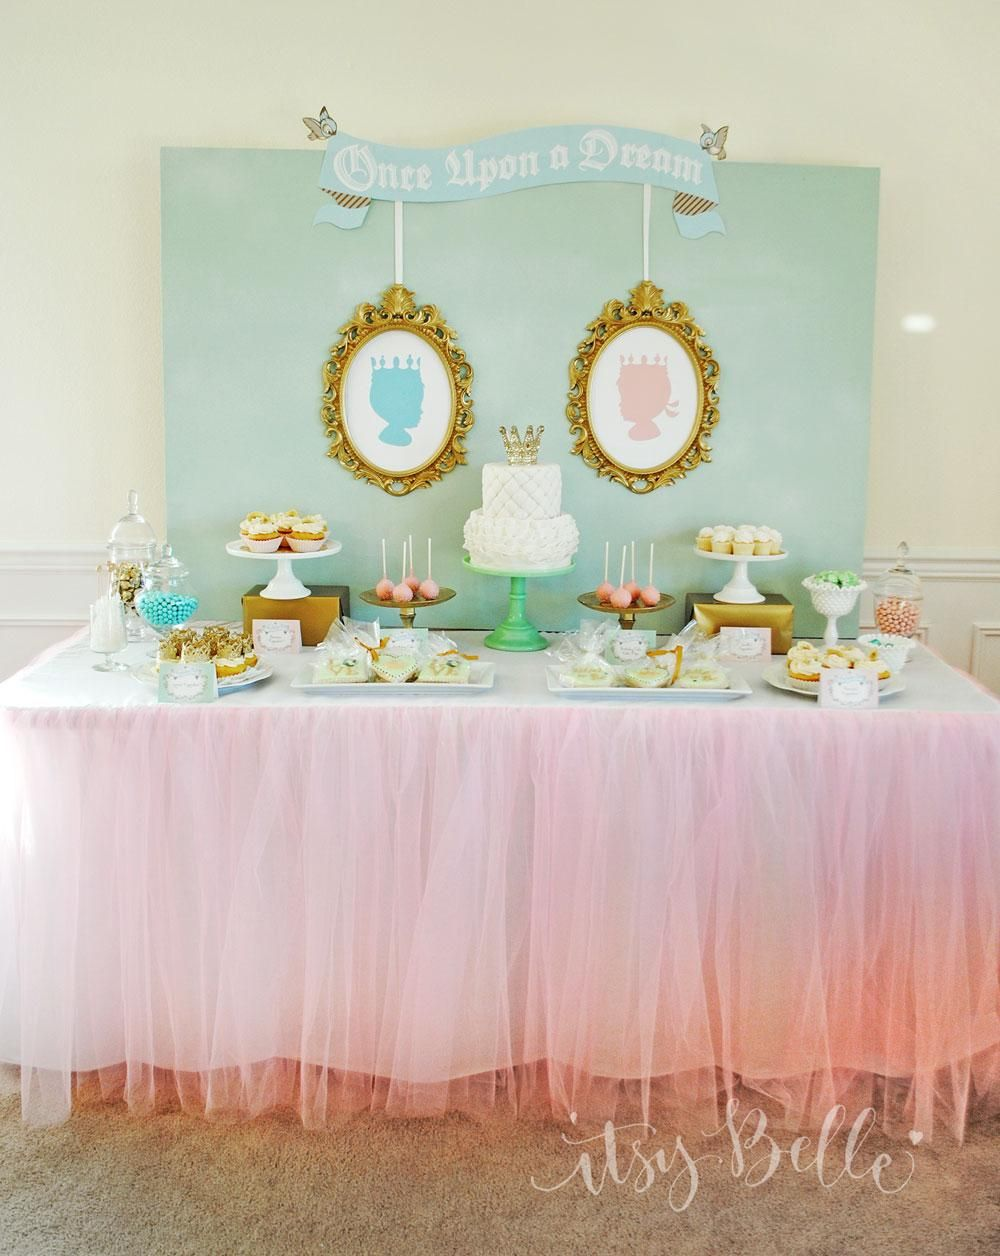 Baby Shower Decorations Twin Boy Girl baby shower decorations for boy and girl twins 2 | shower in 2018